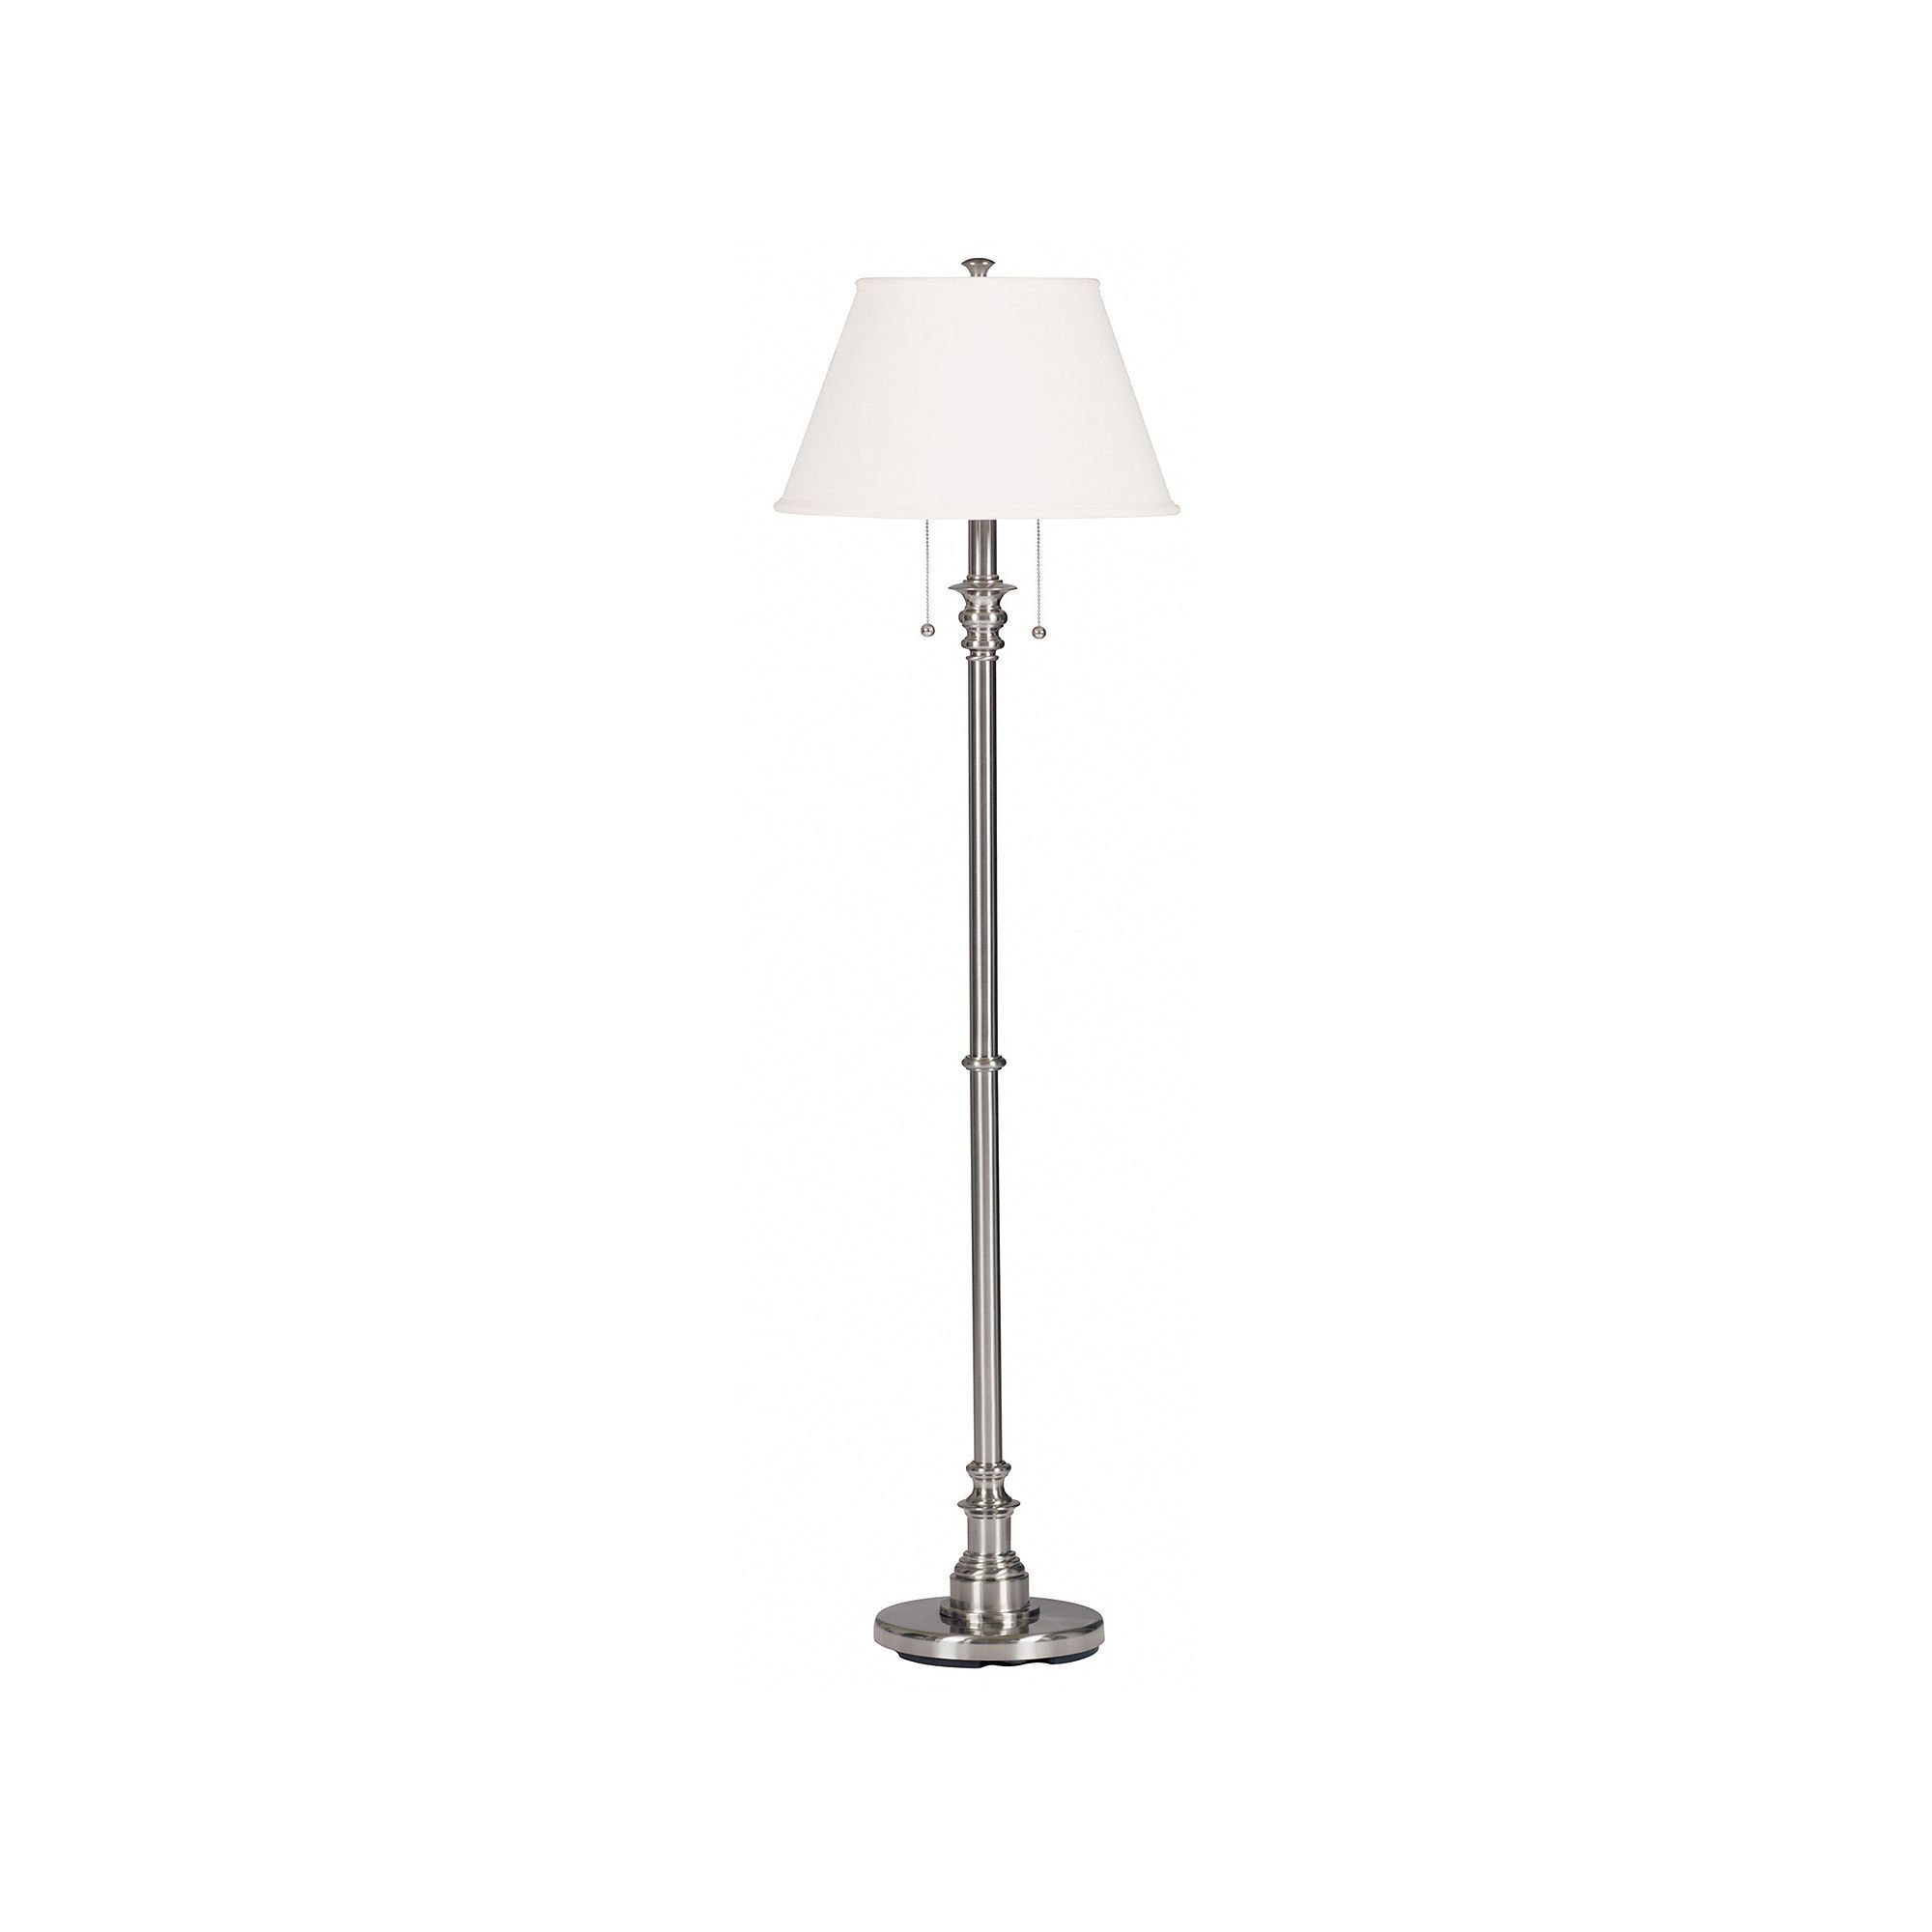 Kohls Floor Lamps Stunning Kenroy Home Spyglass Floor Lamp  Floor Lamp Design Ideas